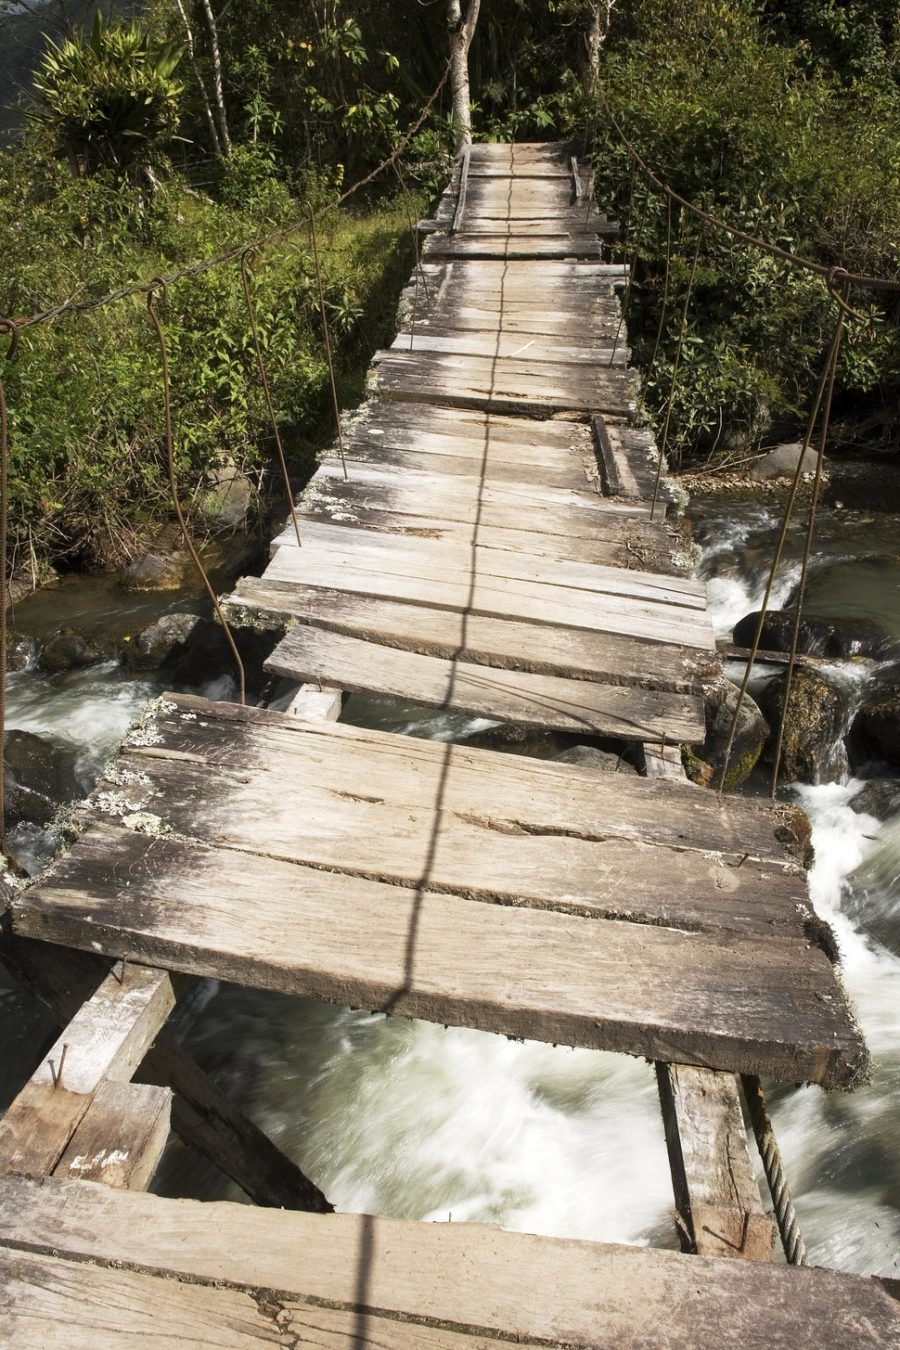 Bridge over the river Irubi. Old wooden bridge with missing parts.Valley of the river Irubi Imbabura Ecuador